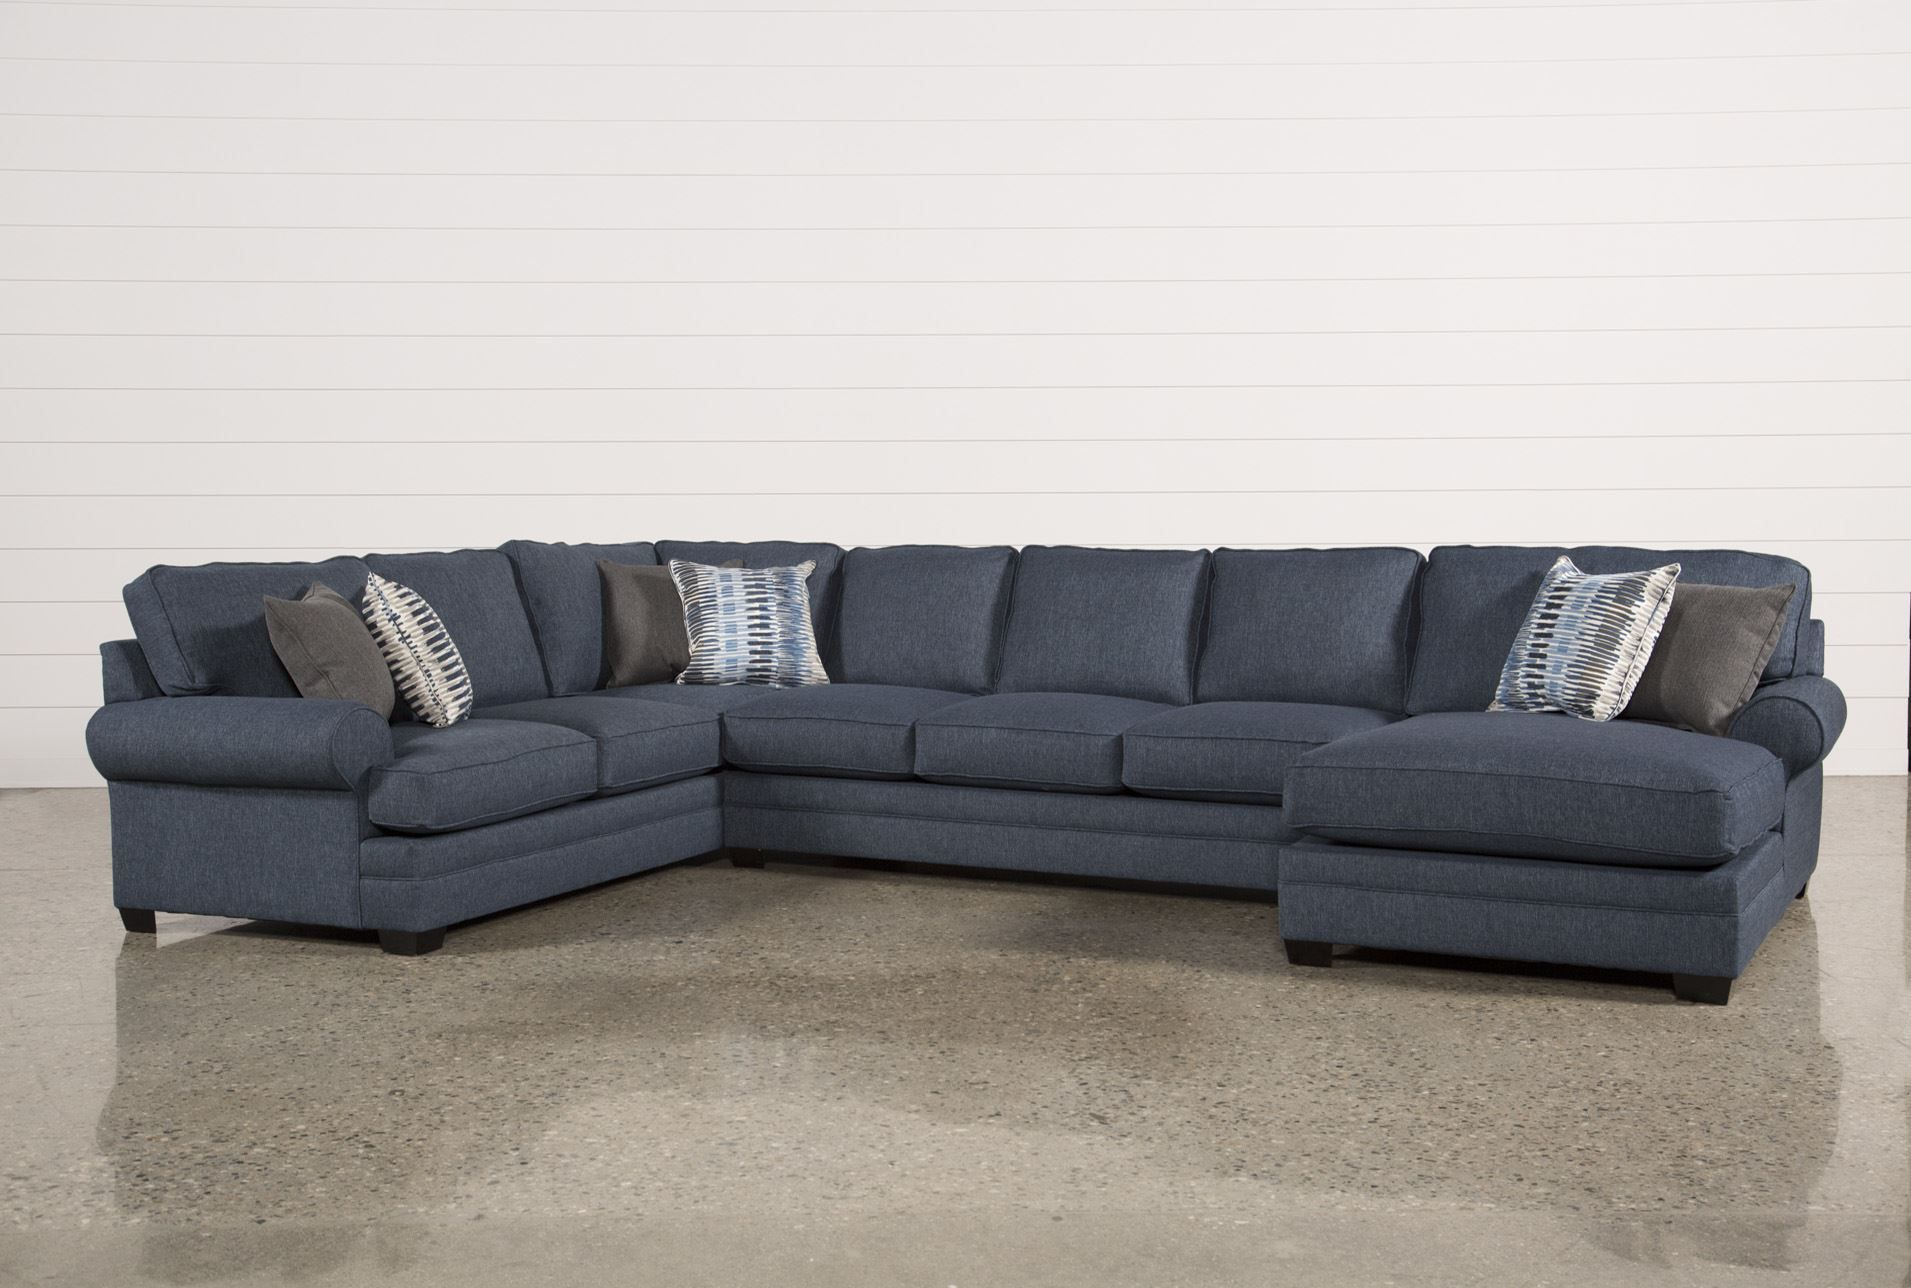 Best Our Karen 3 Piece Sectional Blends Elements From The Past 400 x 300